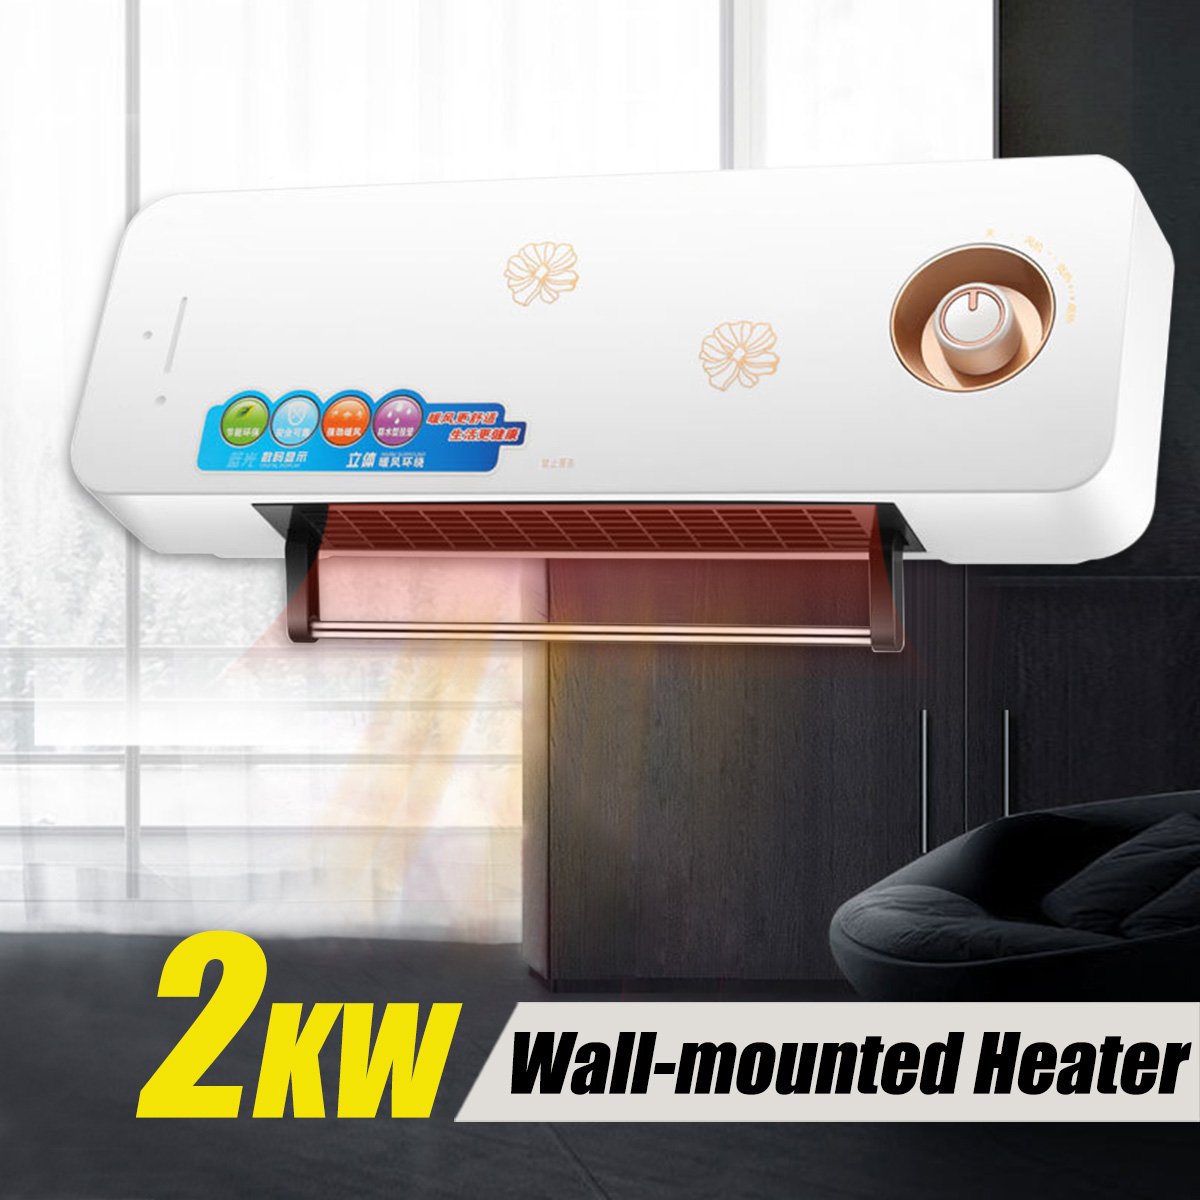 220V 2000W Heater Home Heater Waterproof Bathroom Electric Indoor Wall-mounted Heaters Electrical Hot Air Heating220V 2000W Heater Home Heater Waterproof Bathroom Electric Indoor Wall-mounted Heaters Electrical Hot Air Heating